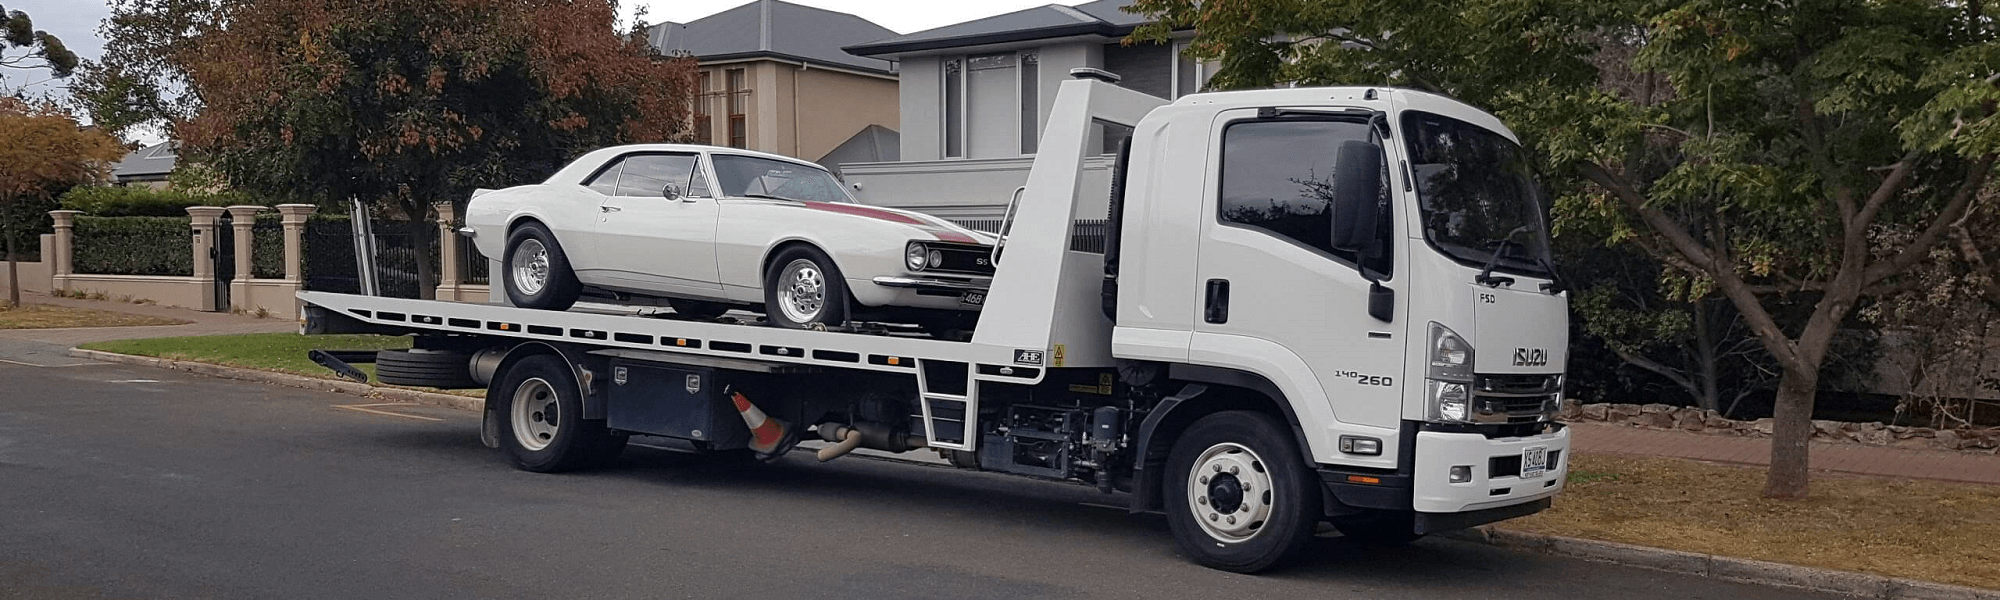 Car Towing Adelaide 026